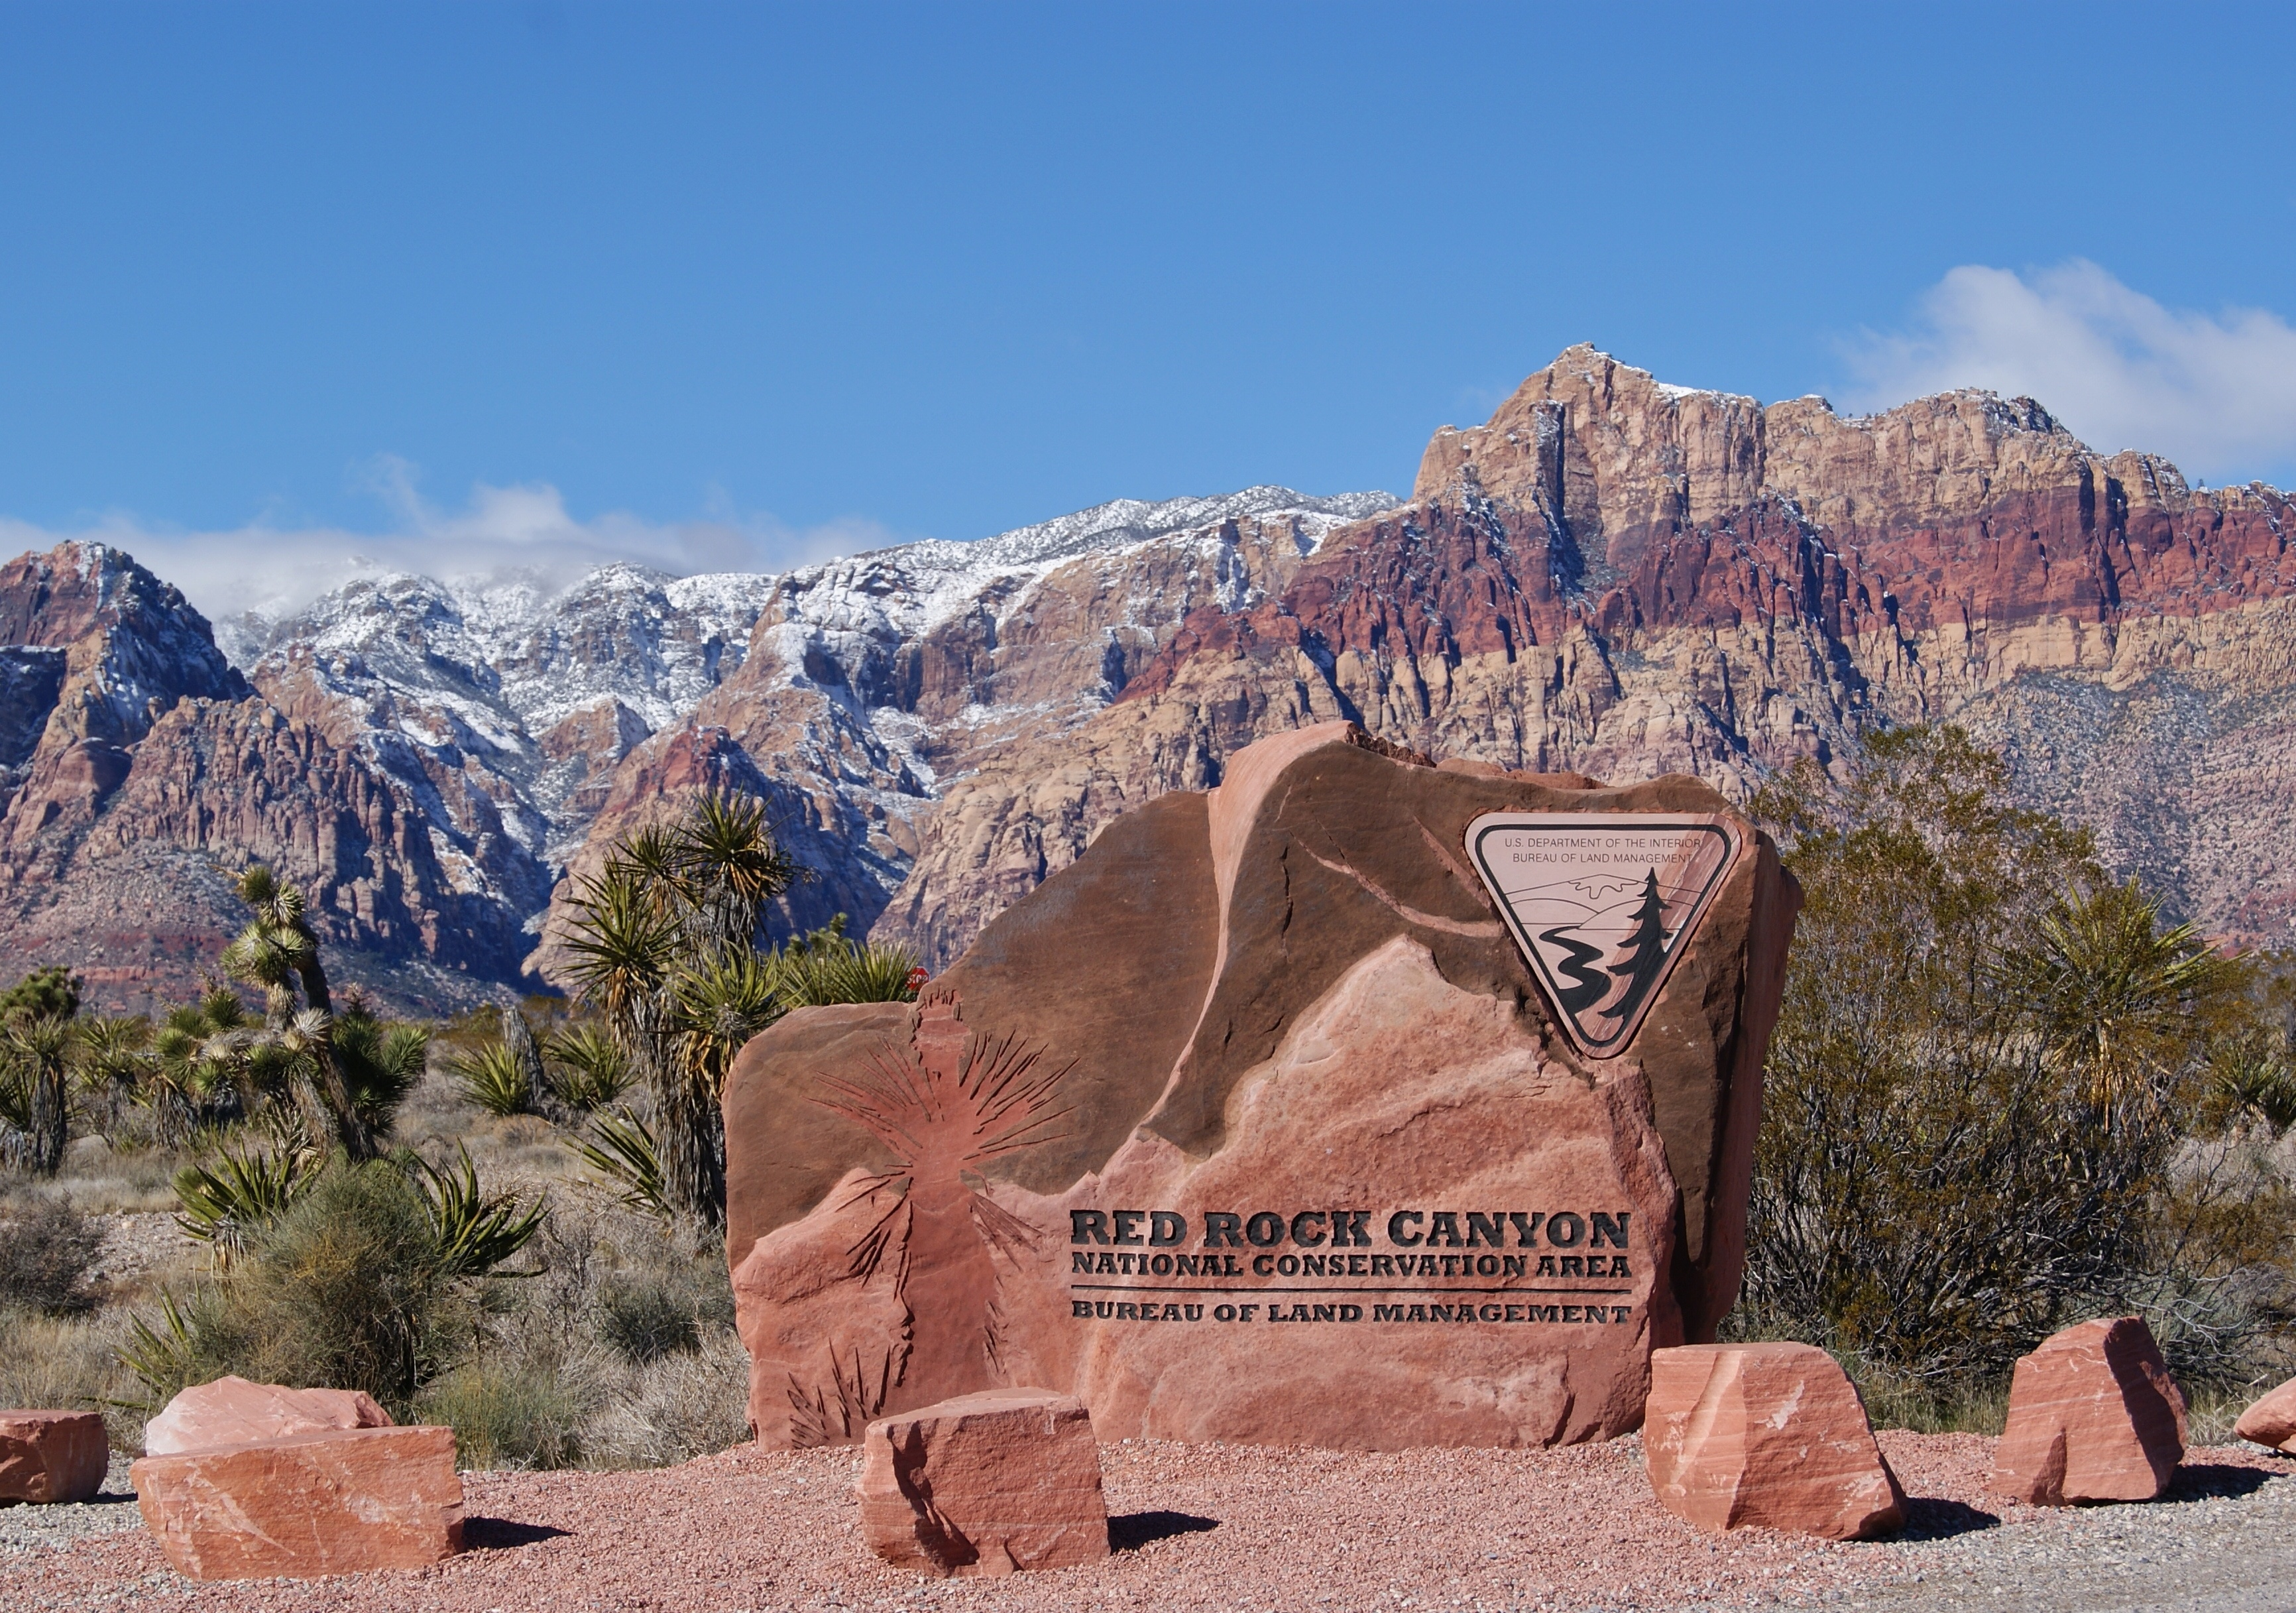 Red Rock Canyon Limo Tour